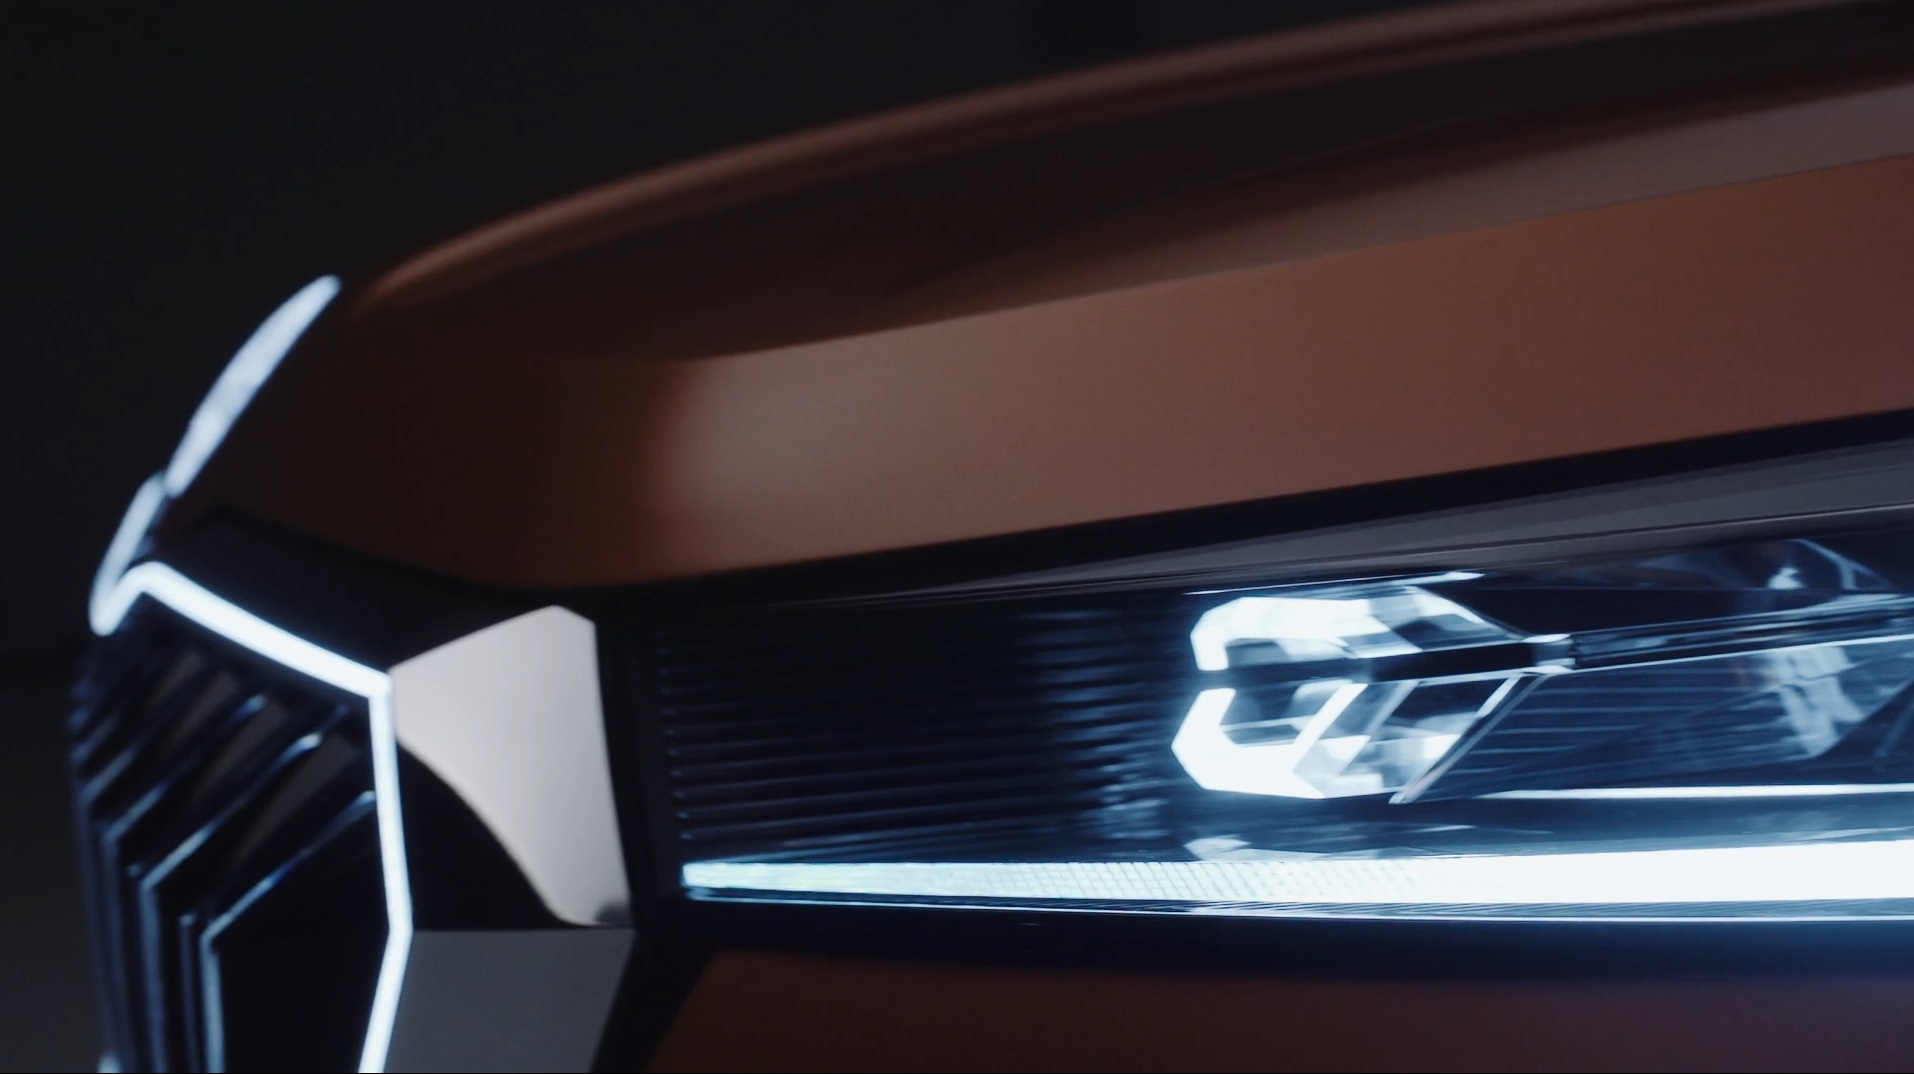 The Czech carmaker has posted a new short teaser video of its Vision IN Concept a couple of weeks ahead of its reveal at the India Motor Show 2020 in Delhi.